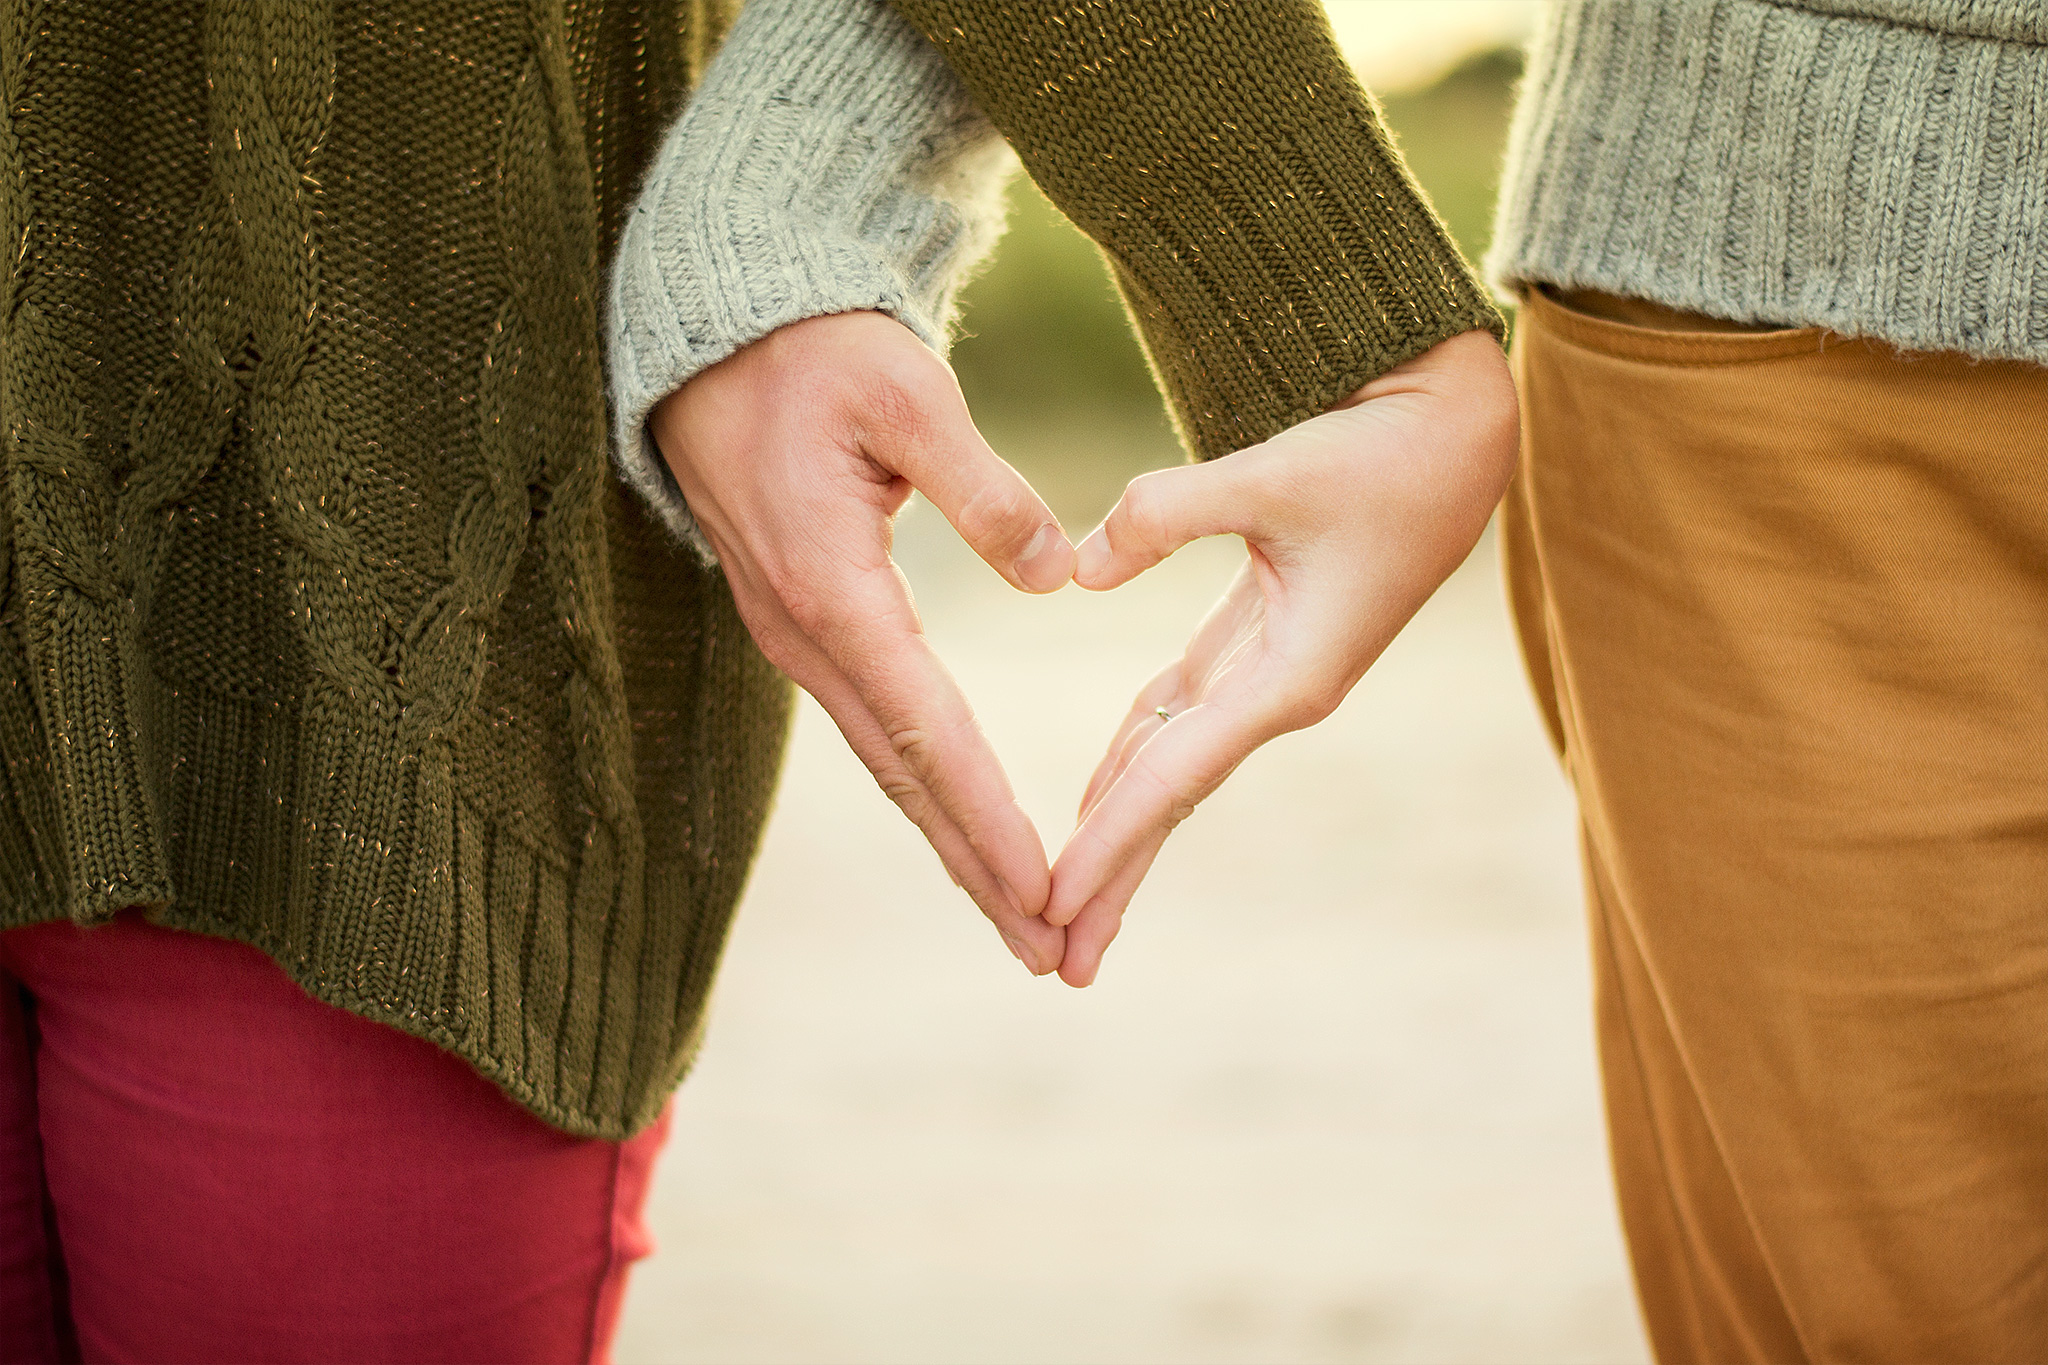 Two people side-by-side, their hands forming a heart.